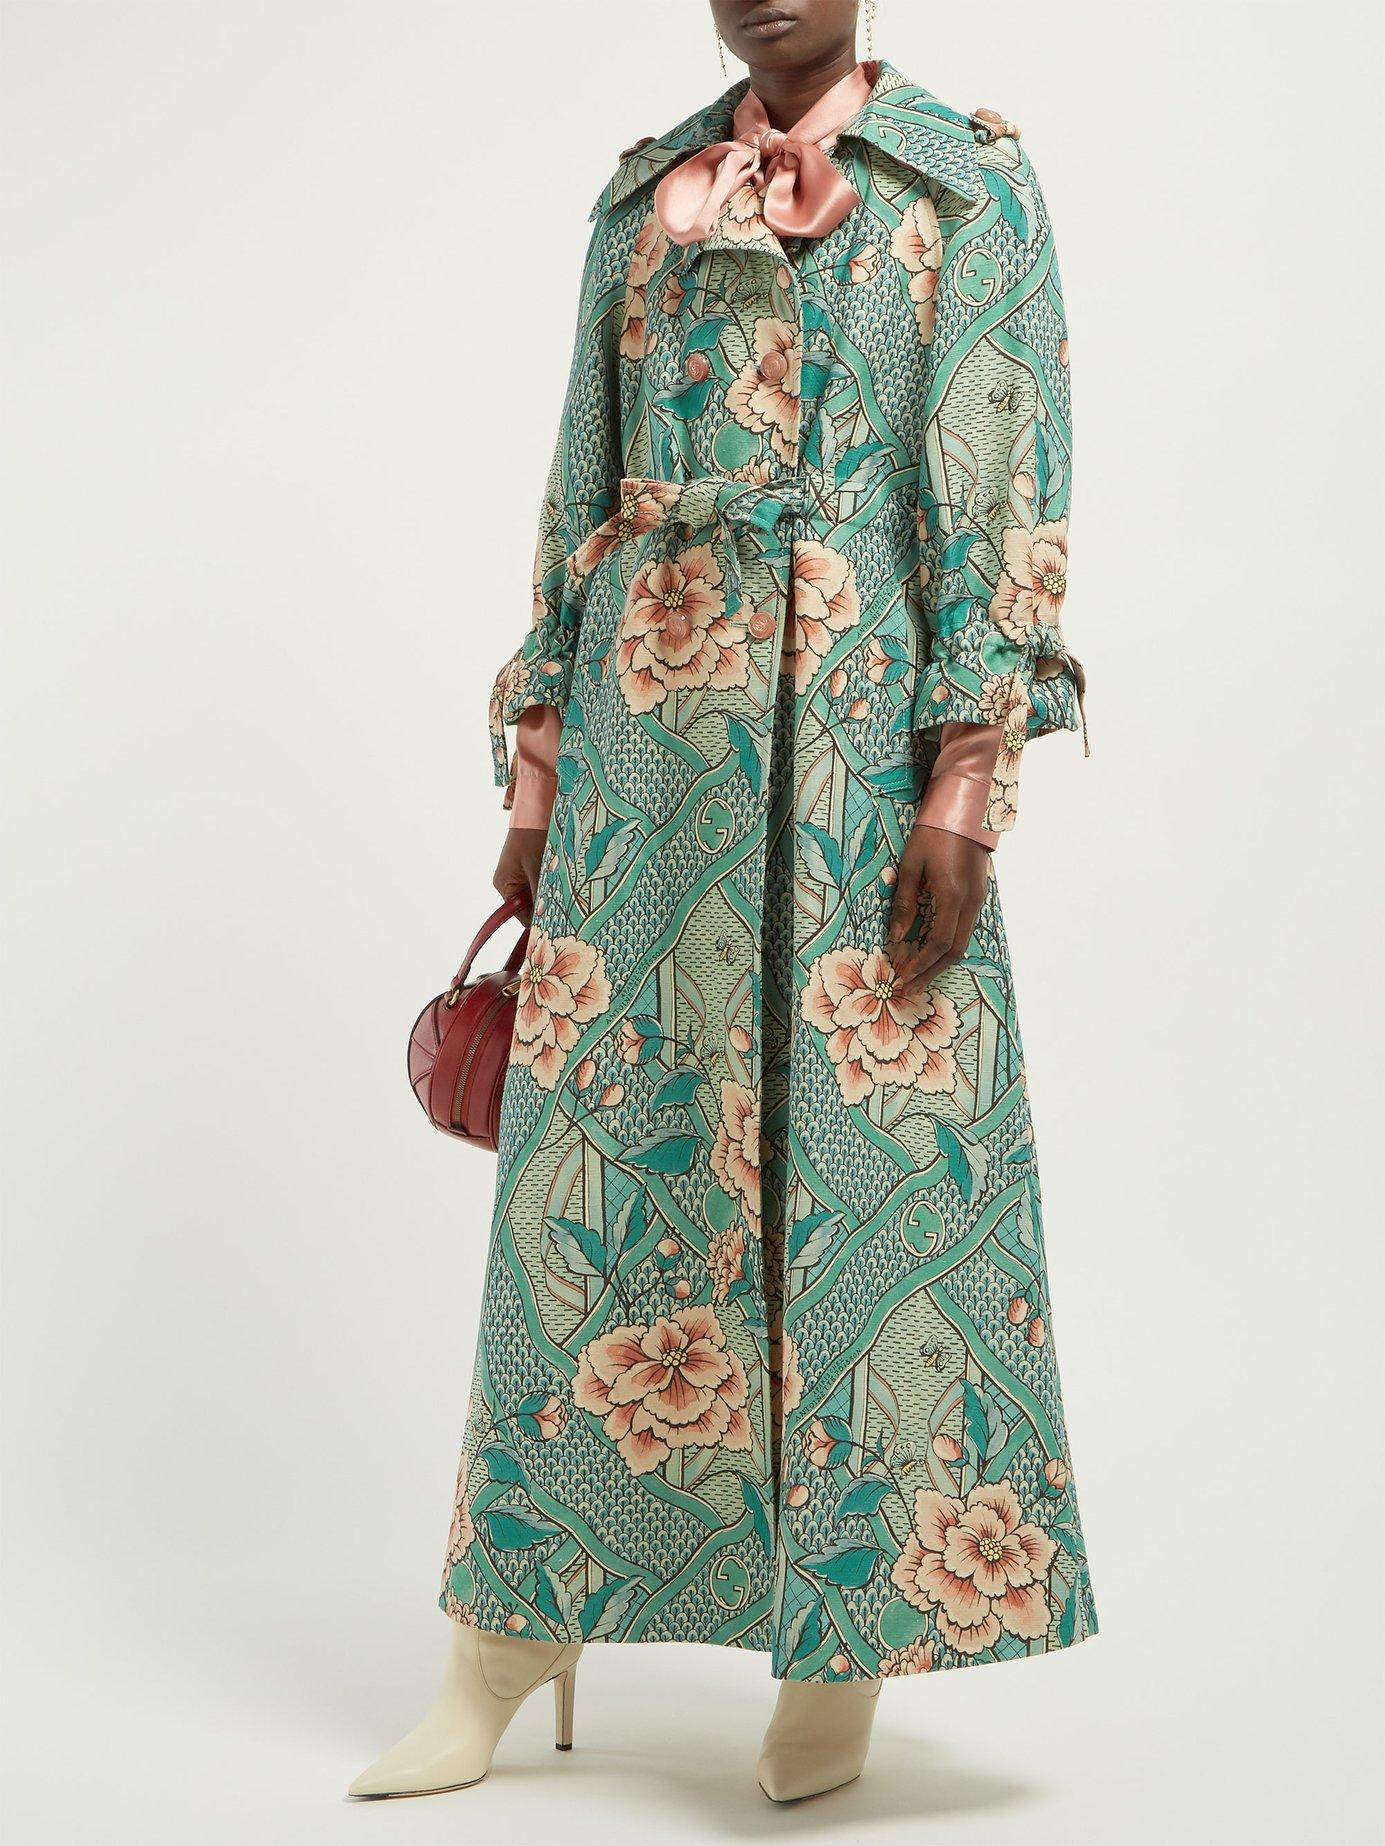 cbb458140 Lyst - Gucci Loraine Floral Print Linen And Cotton Blend Coat in Green